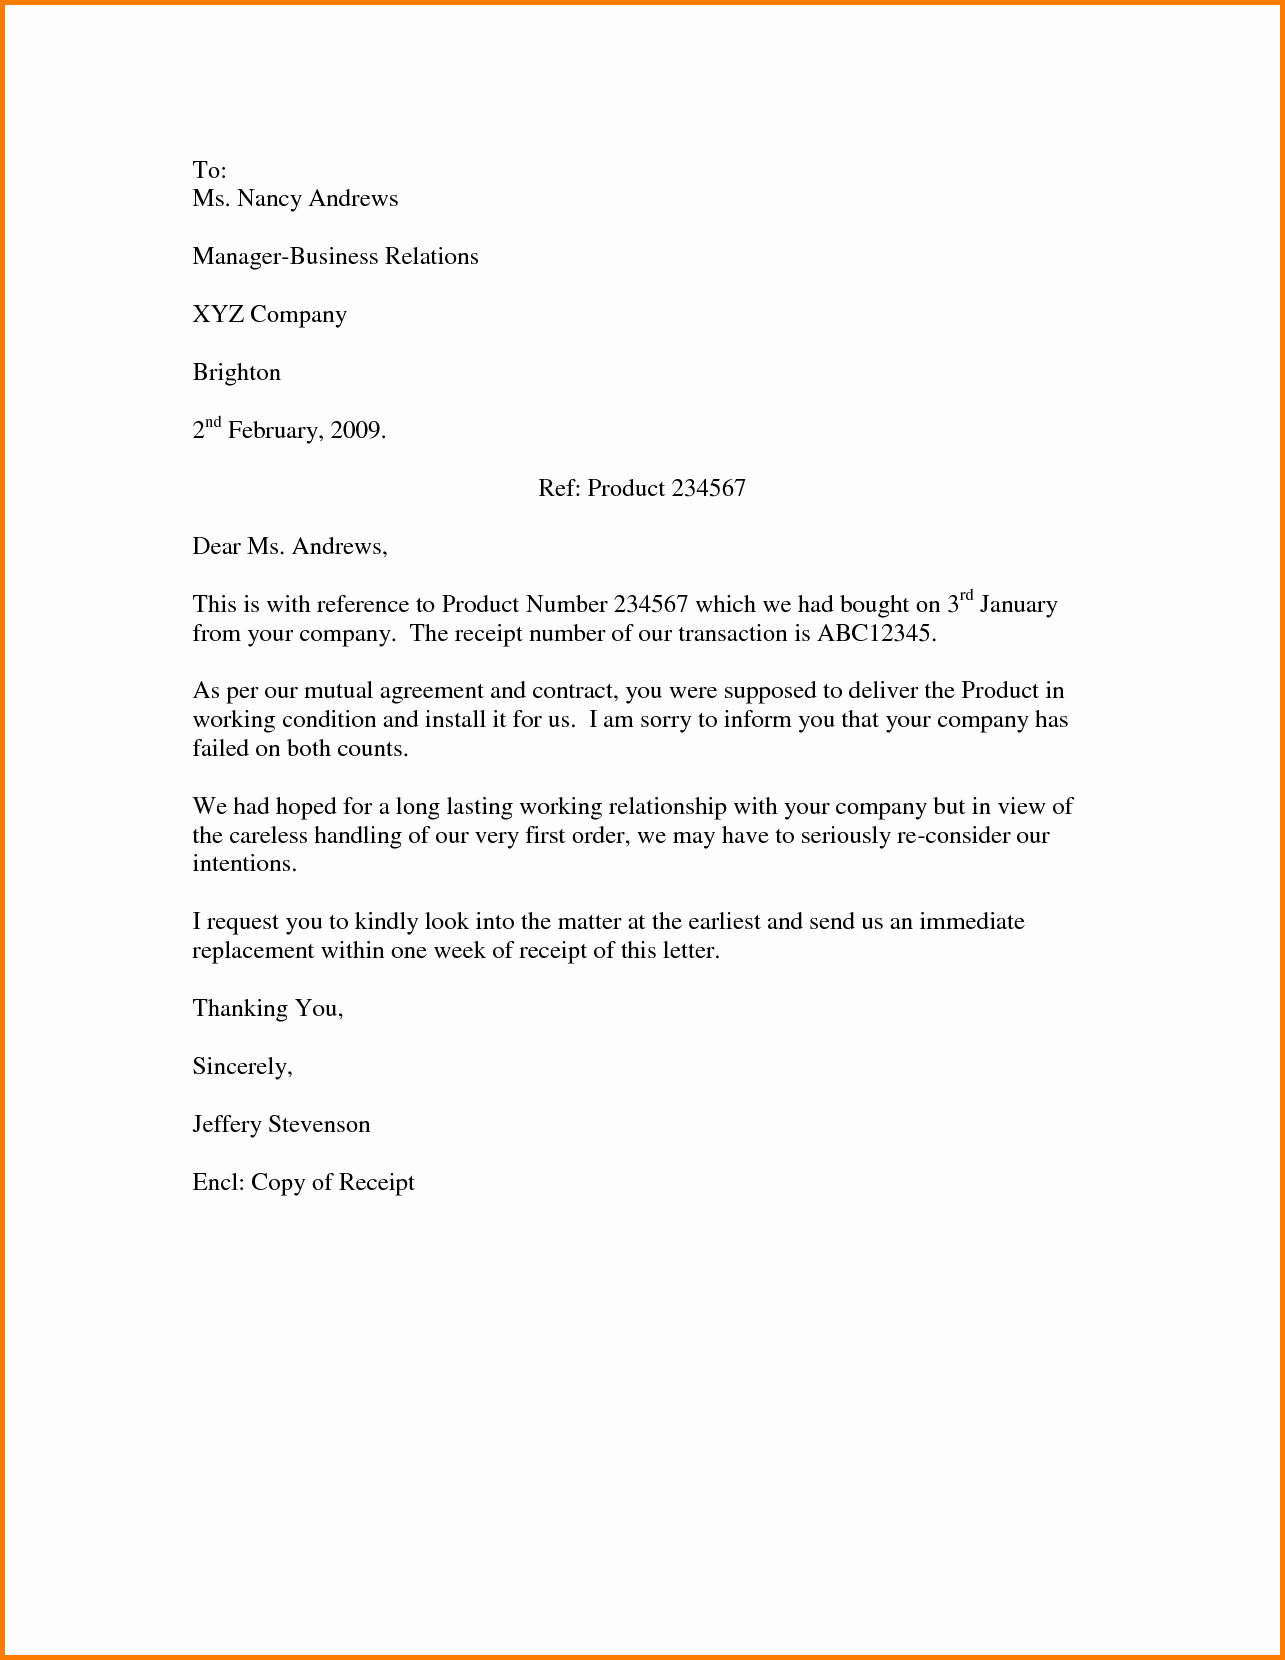 Business Letter format Template Word Fresh How to Do A Business Letter format Word Business